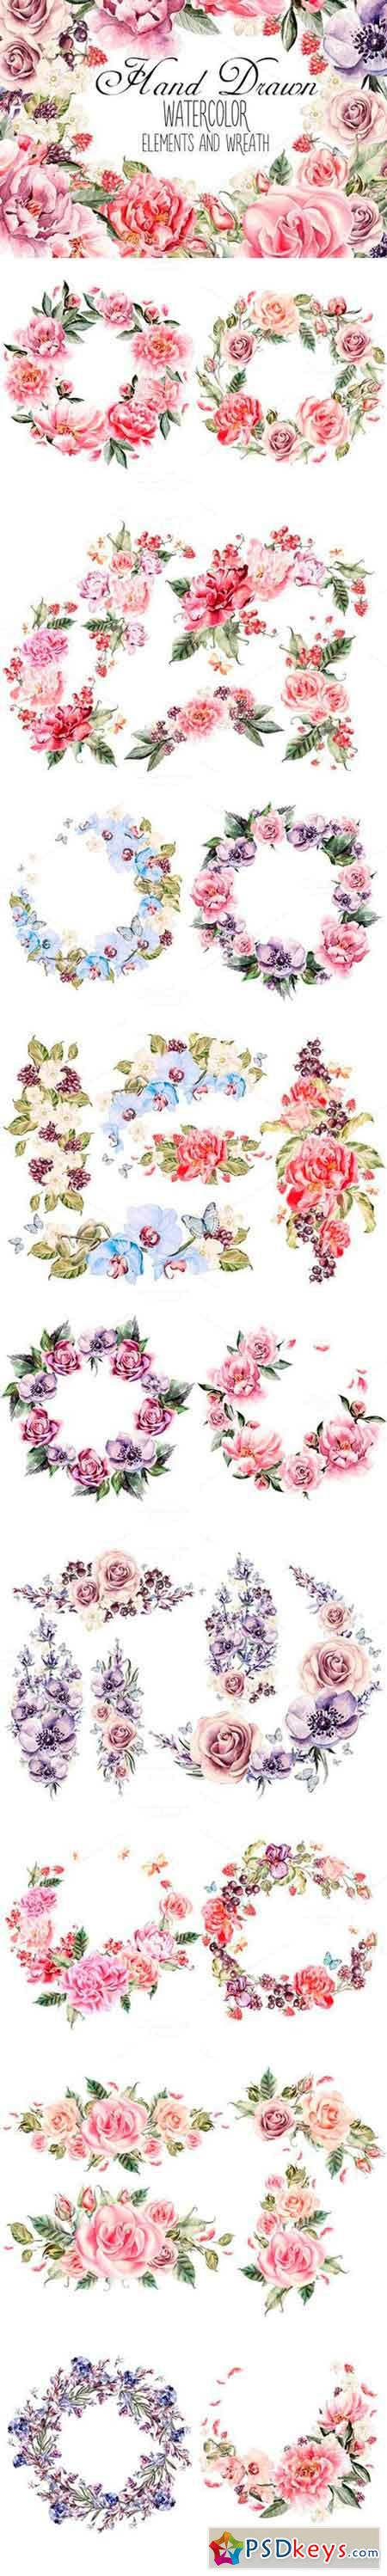 watercolor ELEMENTS and WREATH 691137